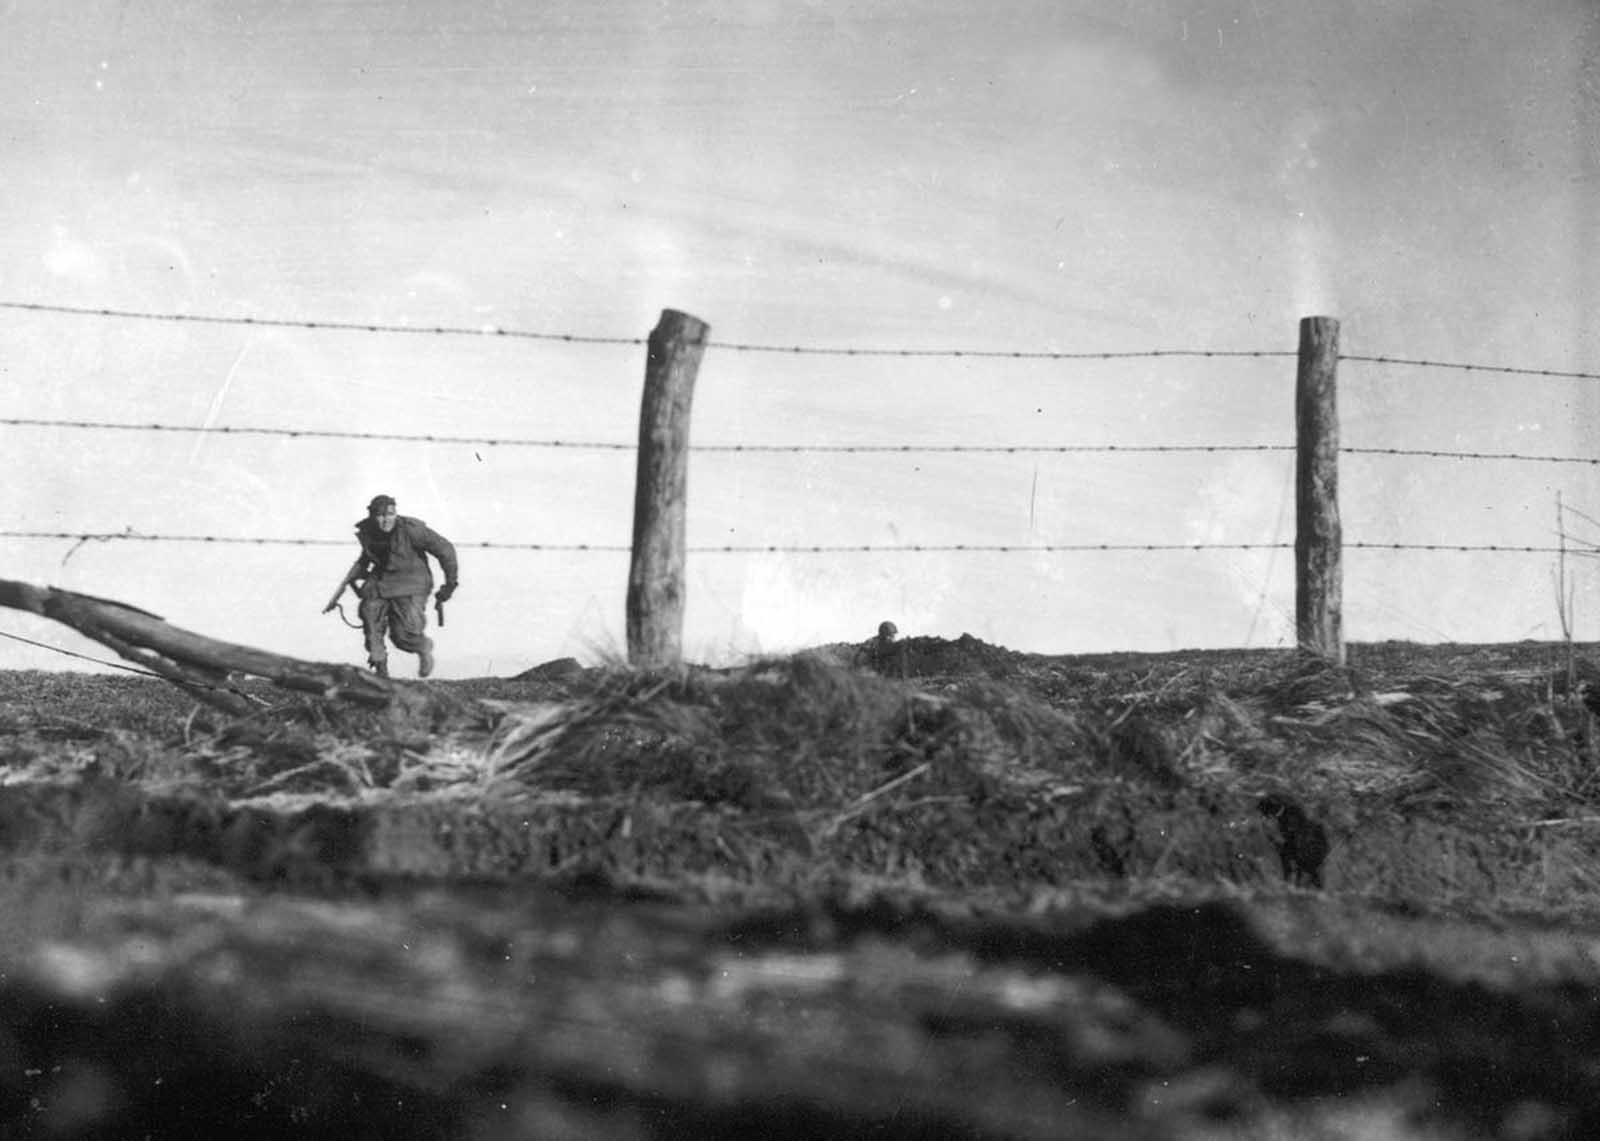 An infantryman from the U.S. Army's 82nd Airborne Division goes out on a one-man sortie while covered by a comrade in the background, near Bra, Belgium, on December 24, 1944.